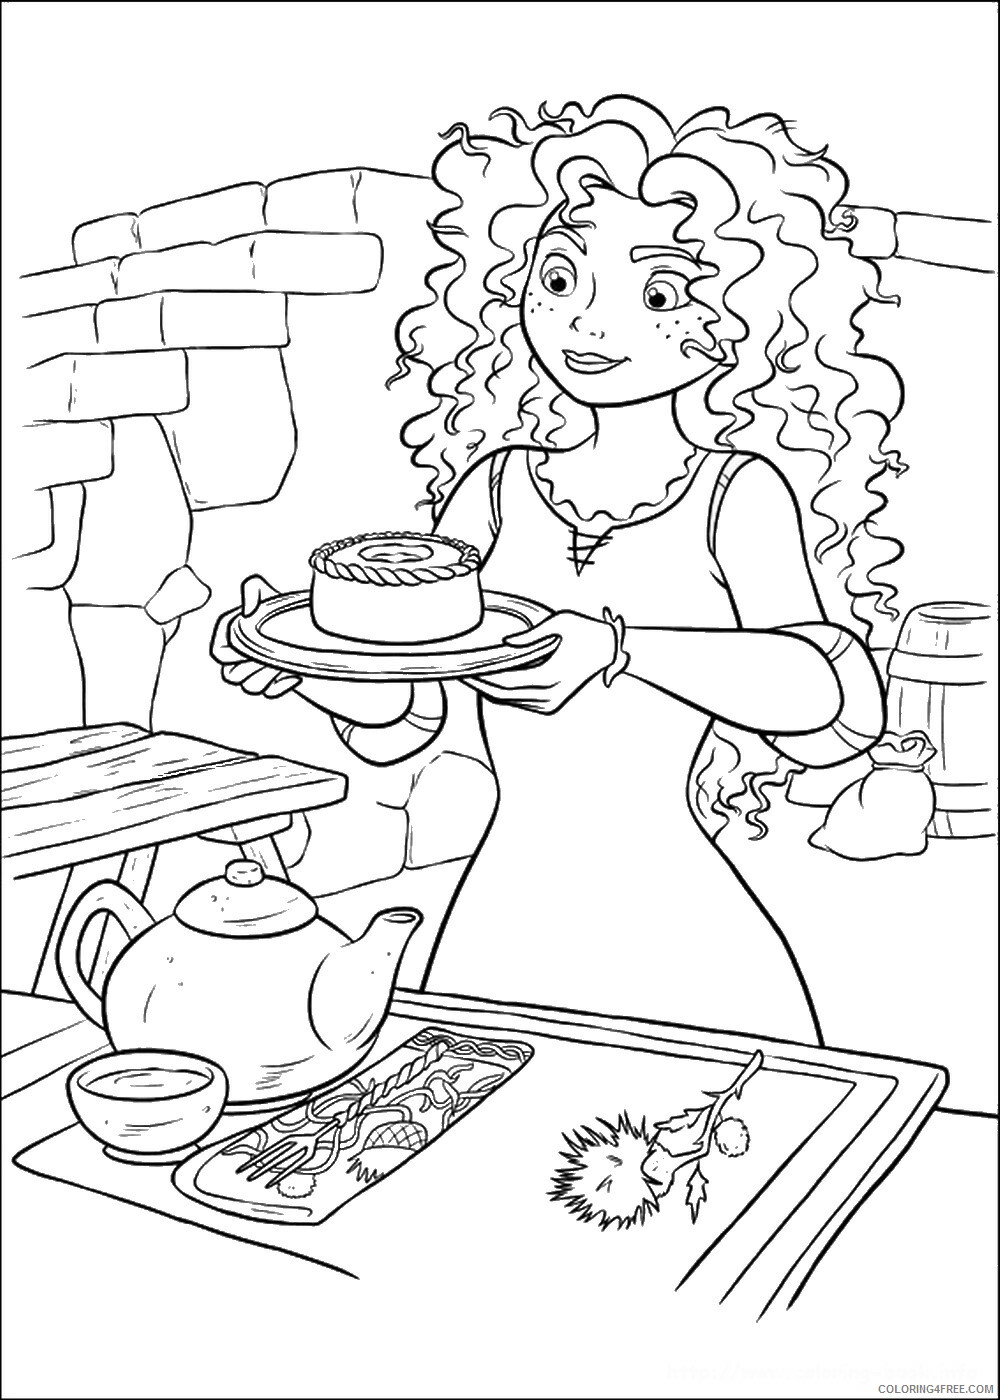 Brave Coloring Pages TV Film brave_cl_11 Printable 2020 01350 Coloring4free